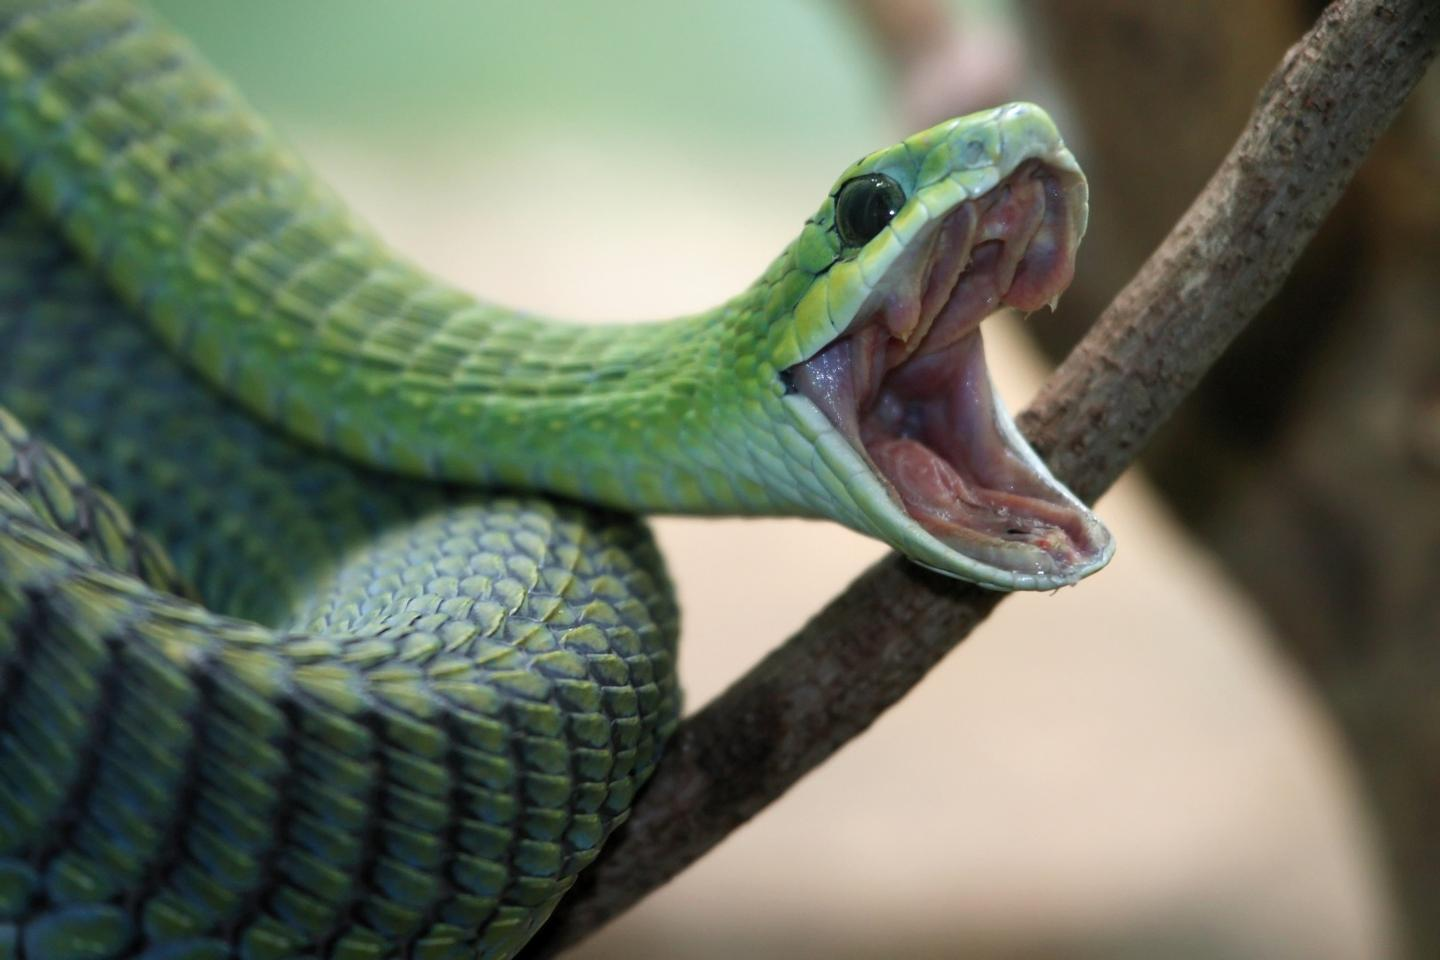 Participants in the study became less afraid of previously-feared animals,such as snakes